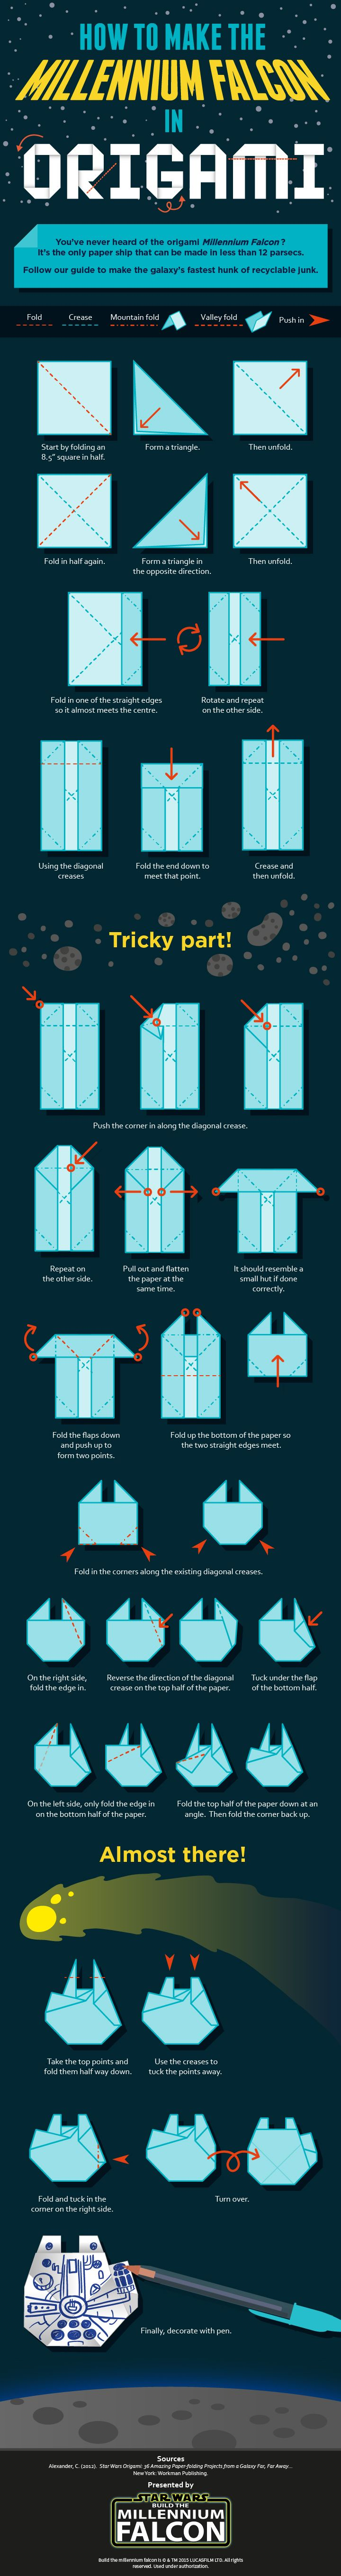 [INFOGRAPHIC] Make a Millennium Falcon in origami—Any Star Wars fan will love this infographic: Step-by-step guide to creating an origami Millennium Falcon.